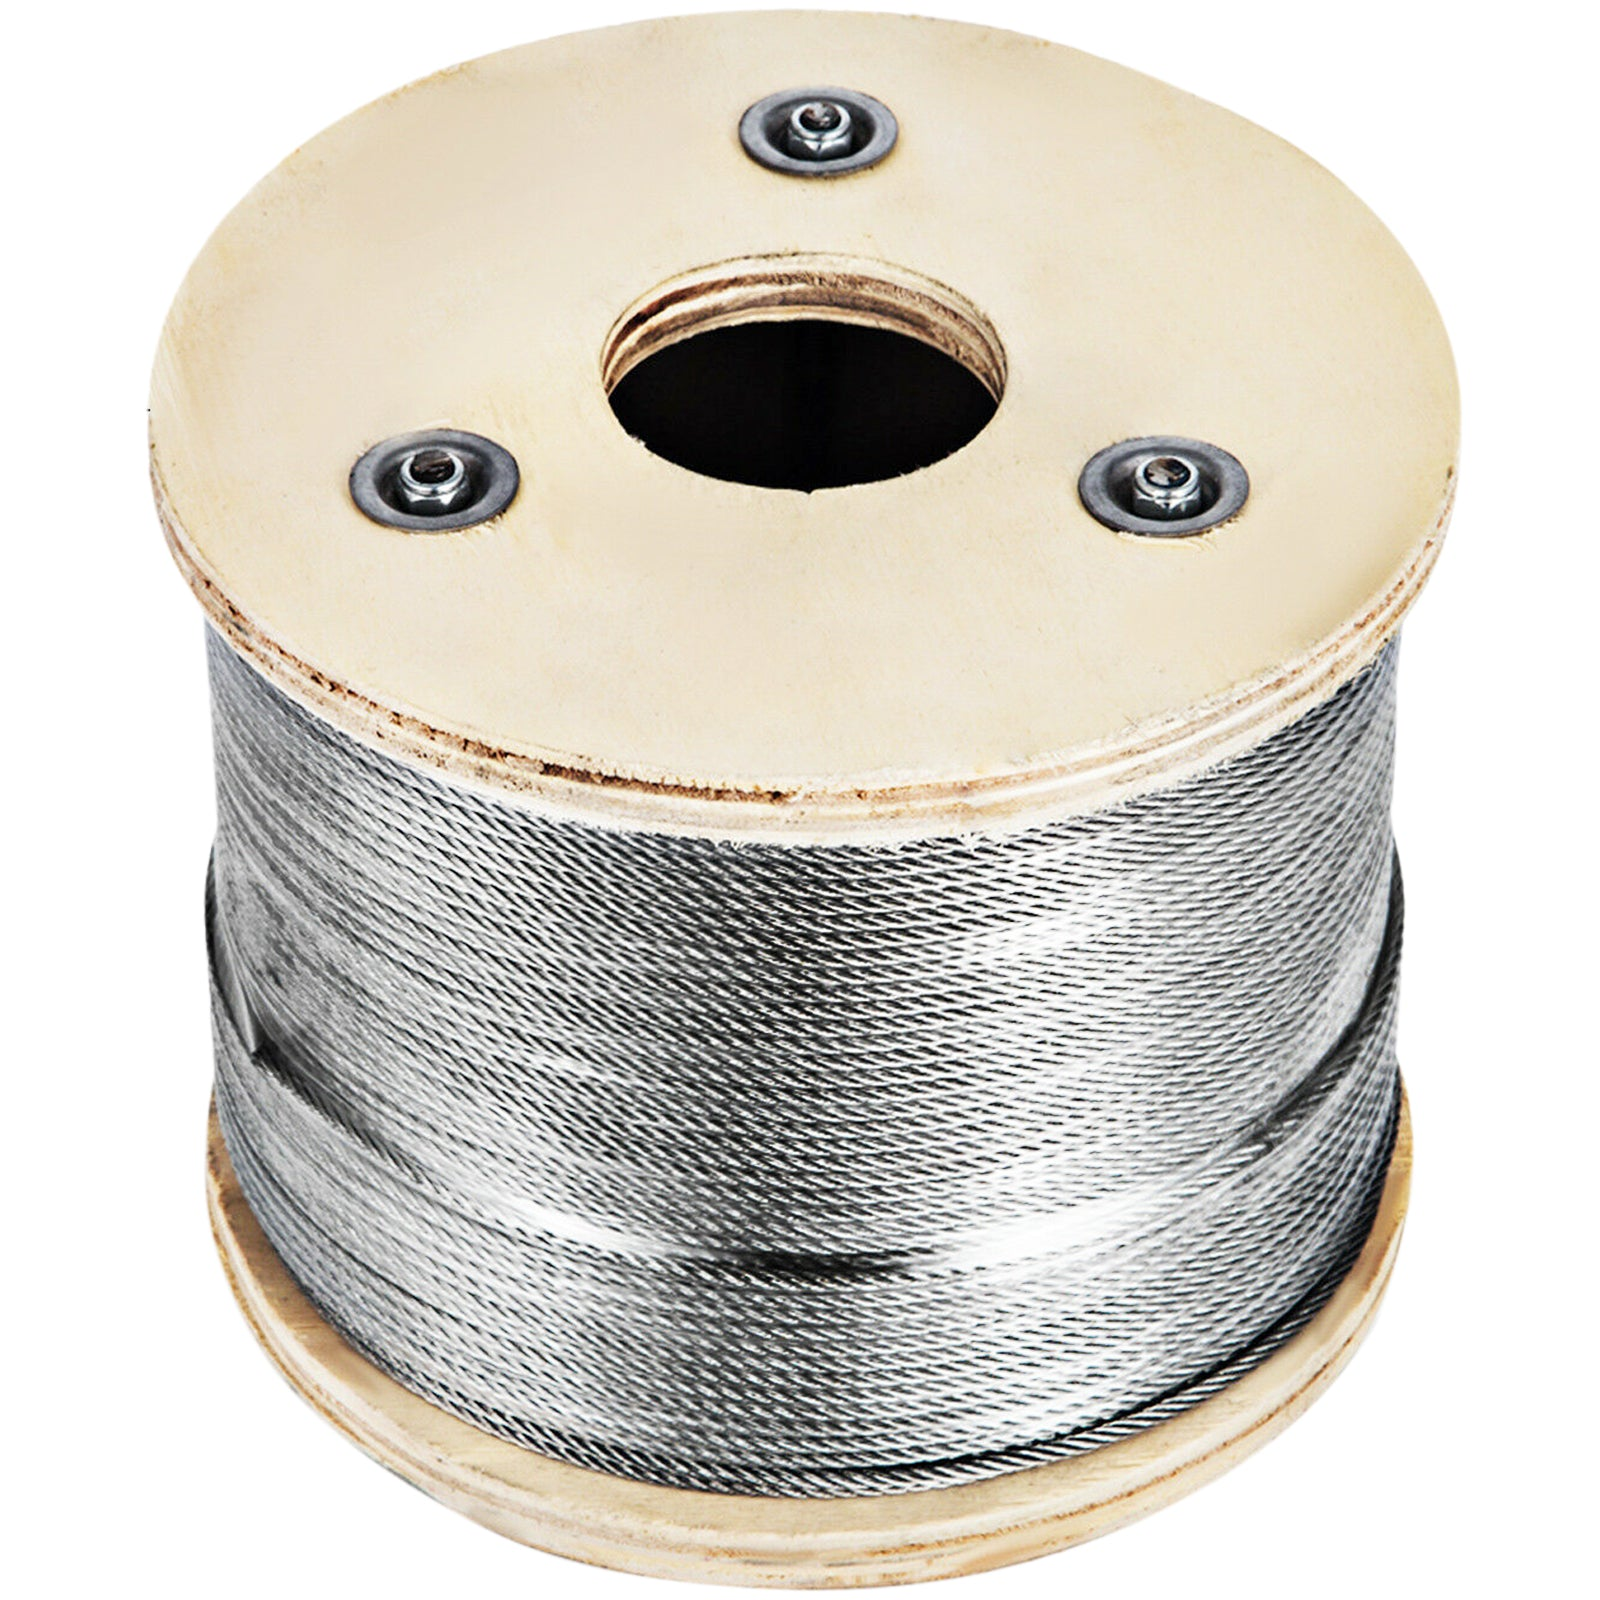 "Cable Railing Type 316 Stainless Steel Wire Rope Cable, 1/8"",7x7, 500 Ft Reel"